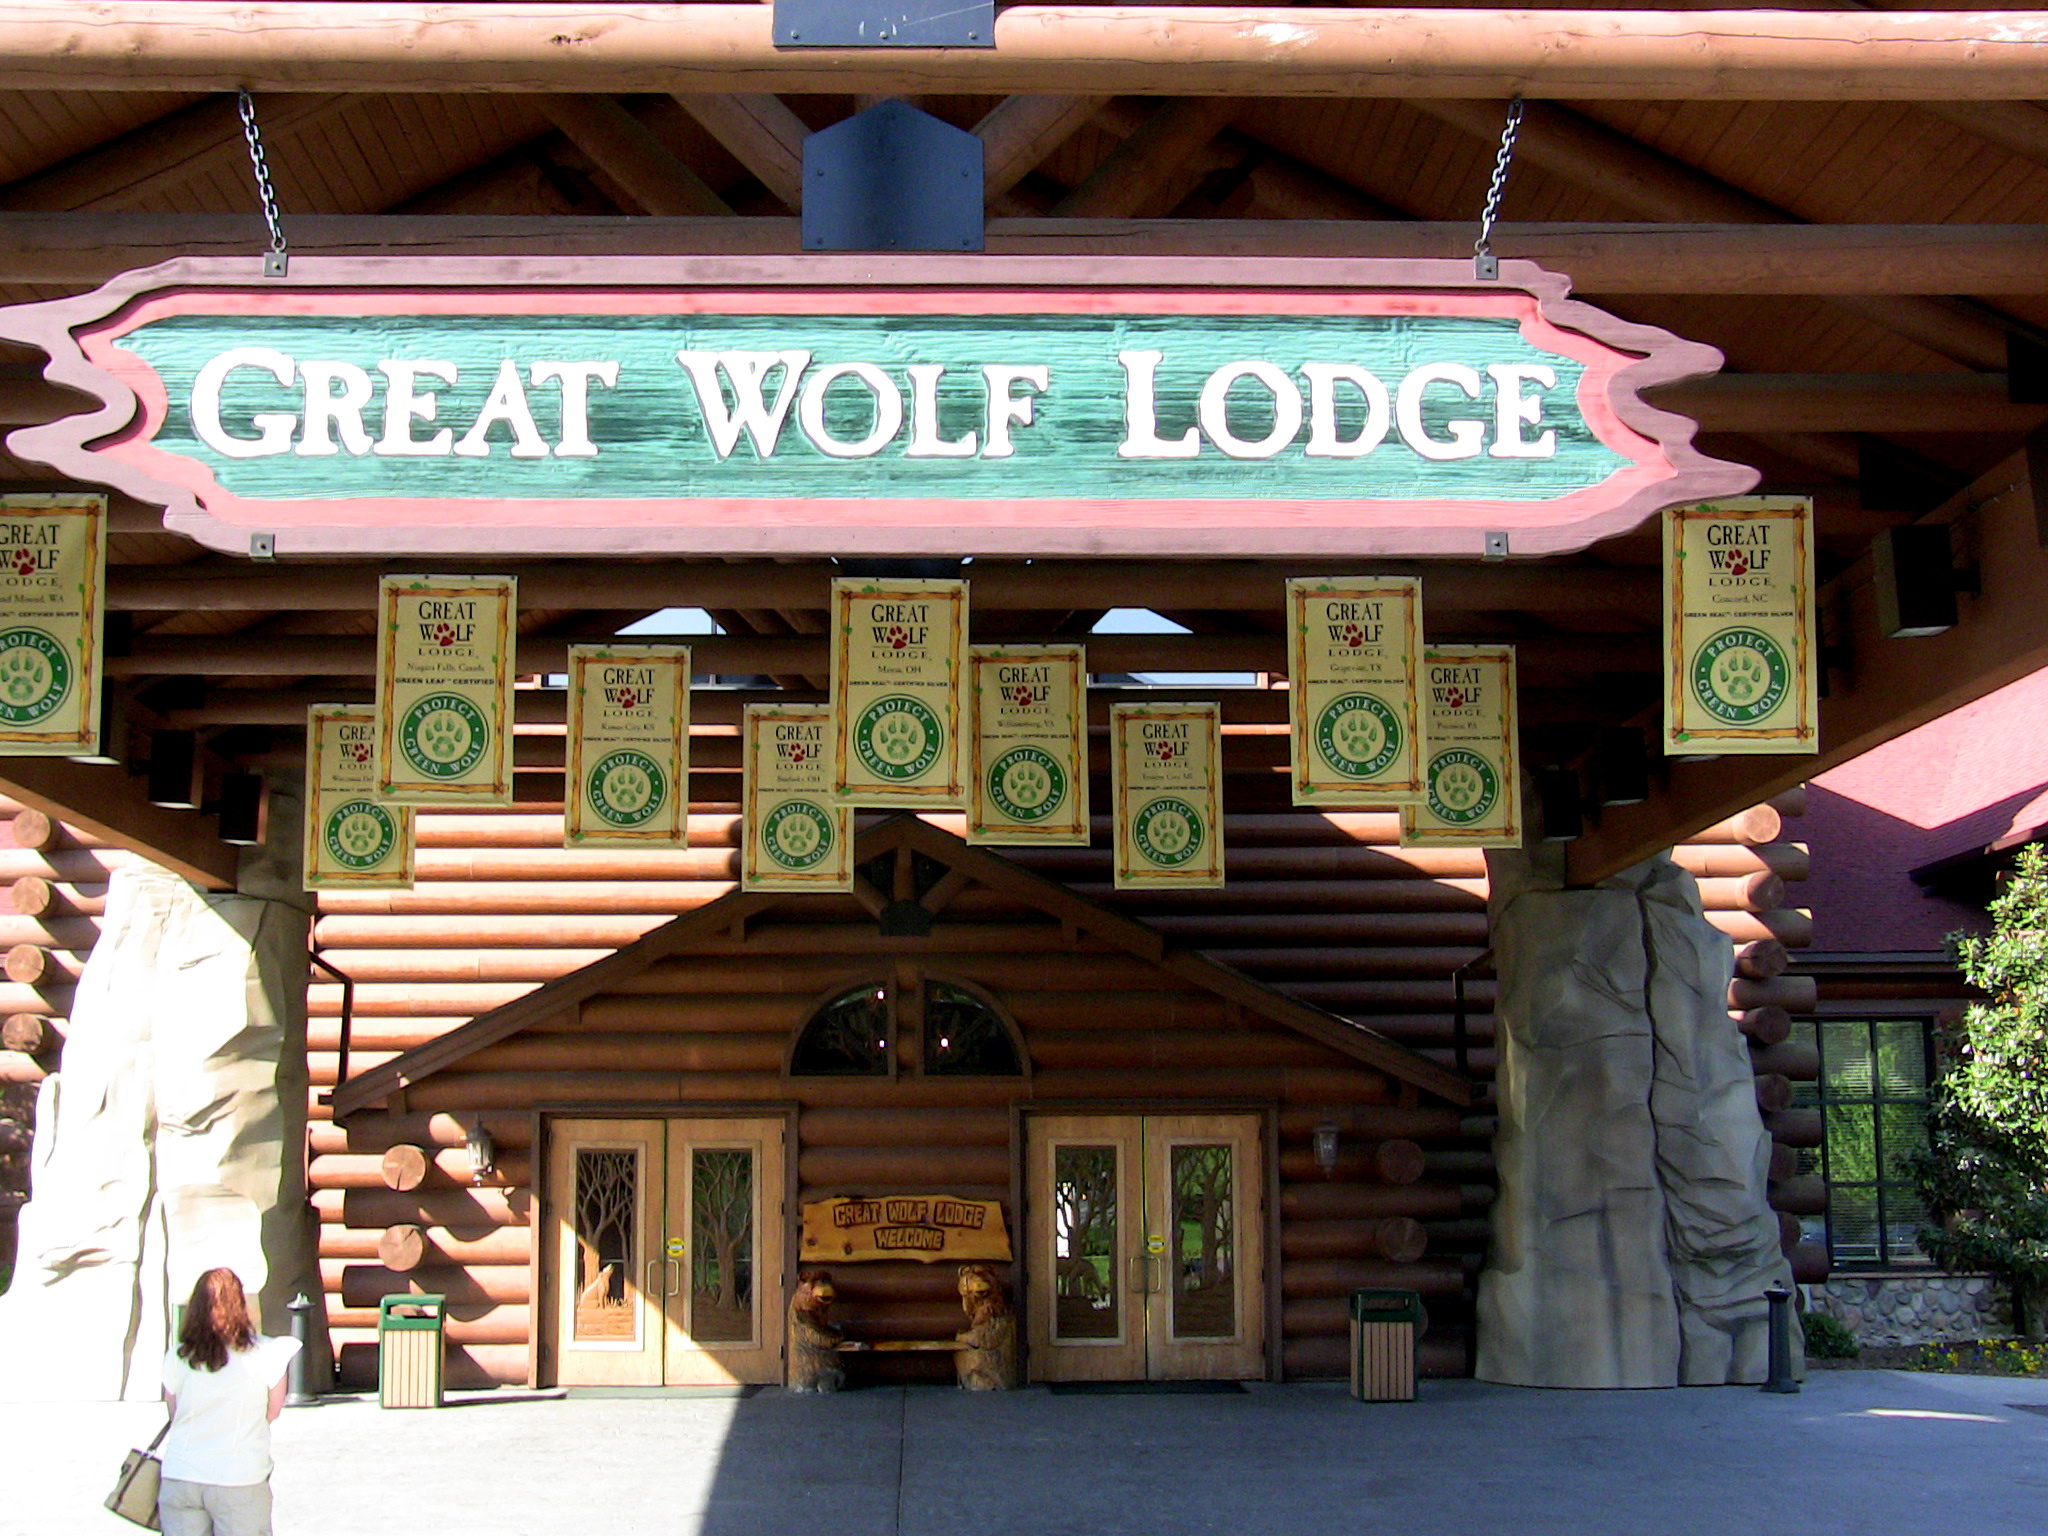 Great Wolf Lodge…I'm Missing the Point.